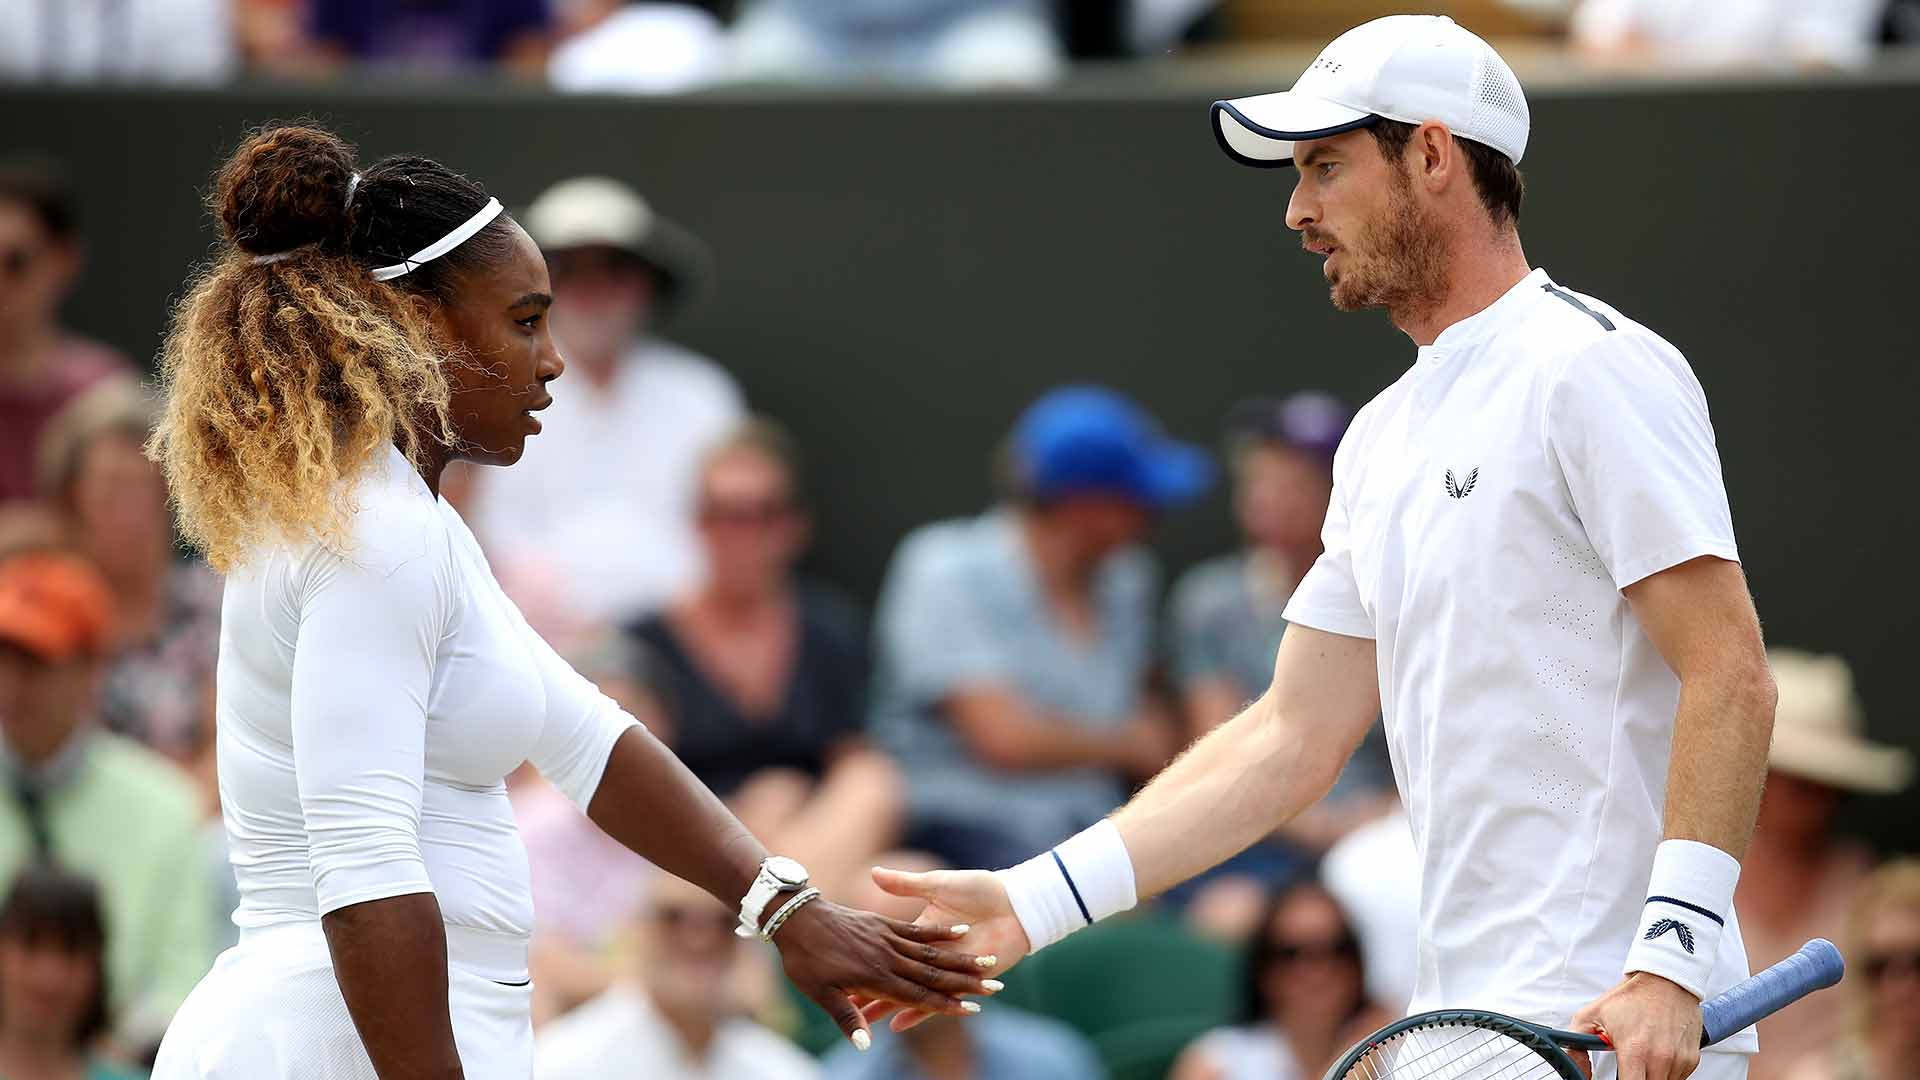 Serena Williams/Andy Murray fall to top seeds Bruno Soares/Nicole Melichar on Wednesday at Wimbledon